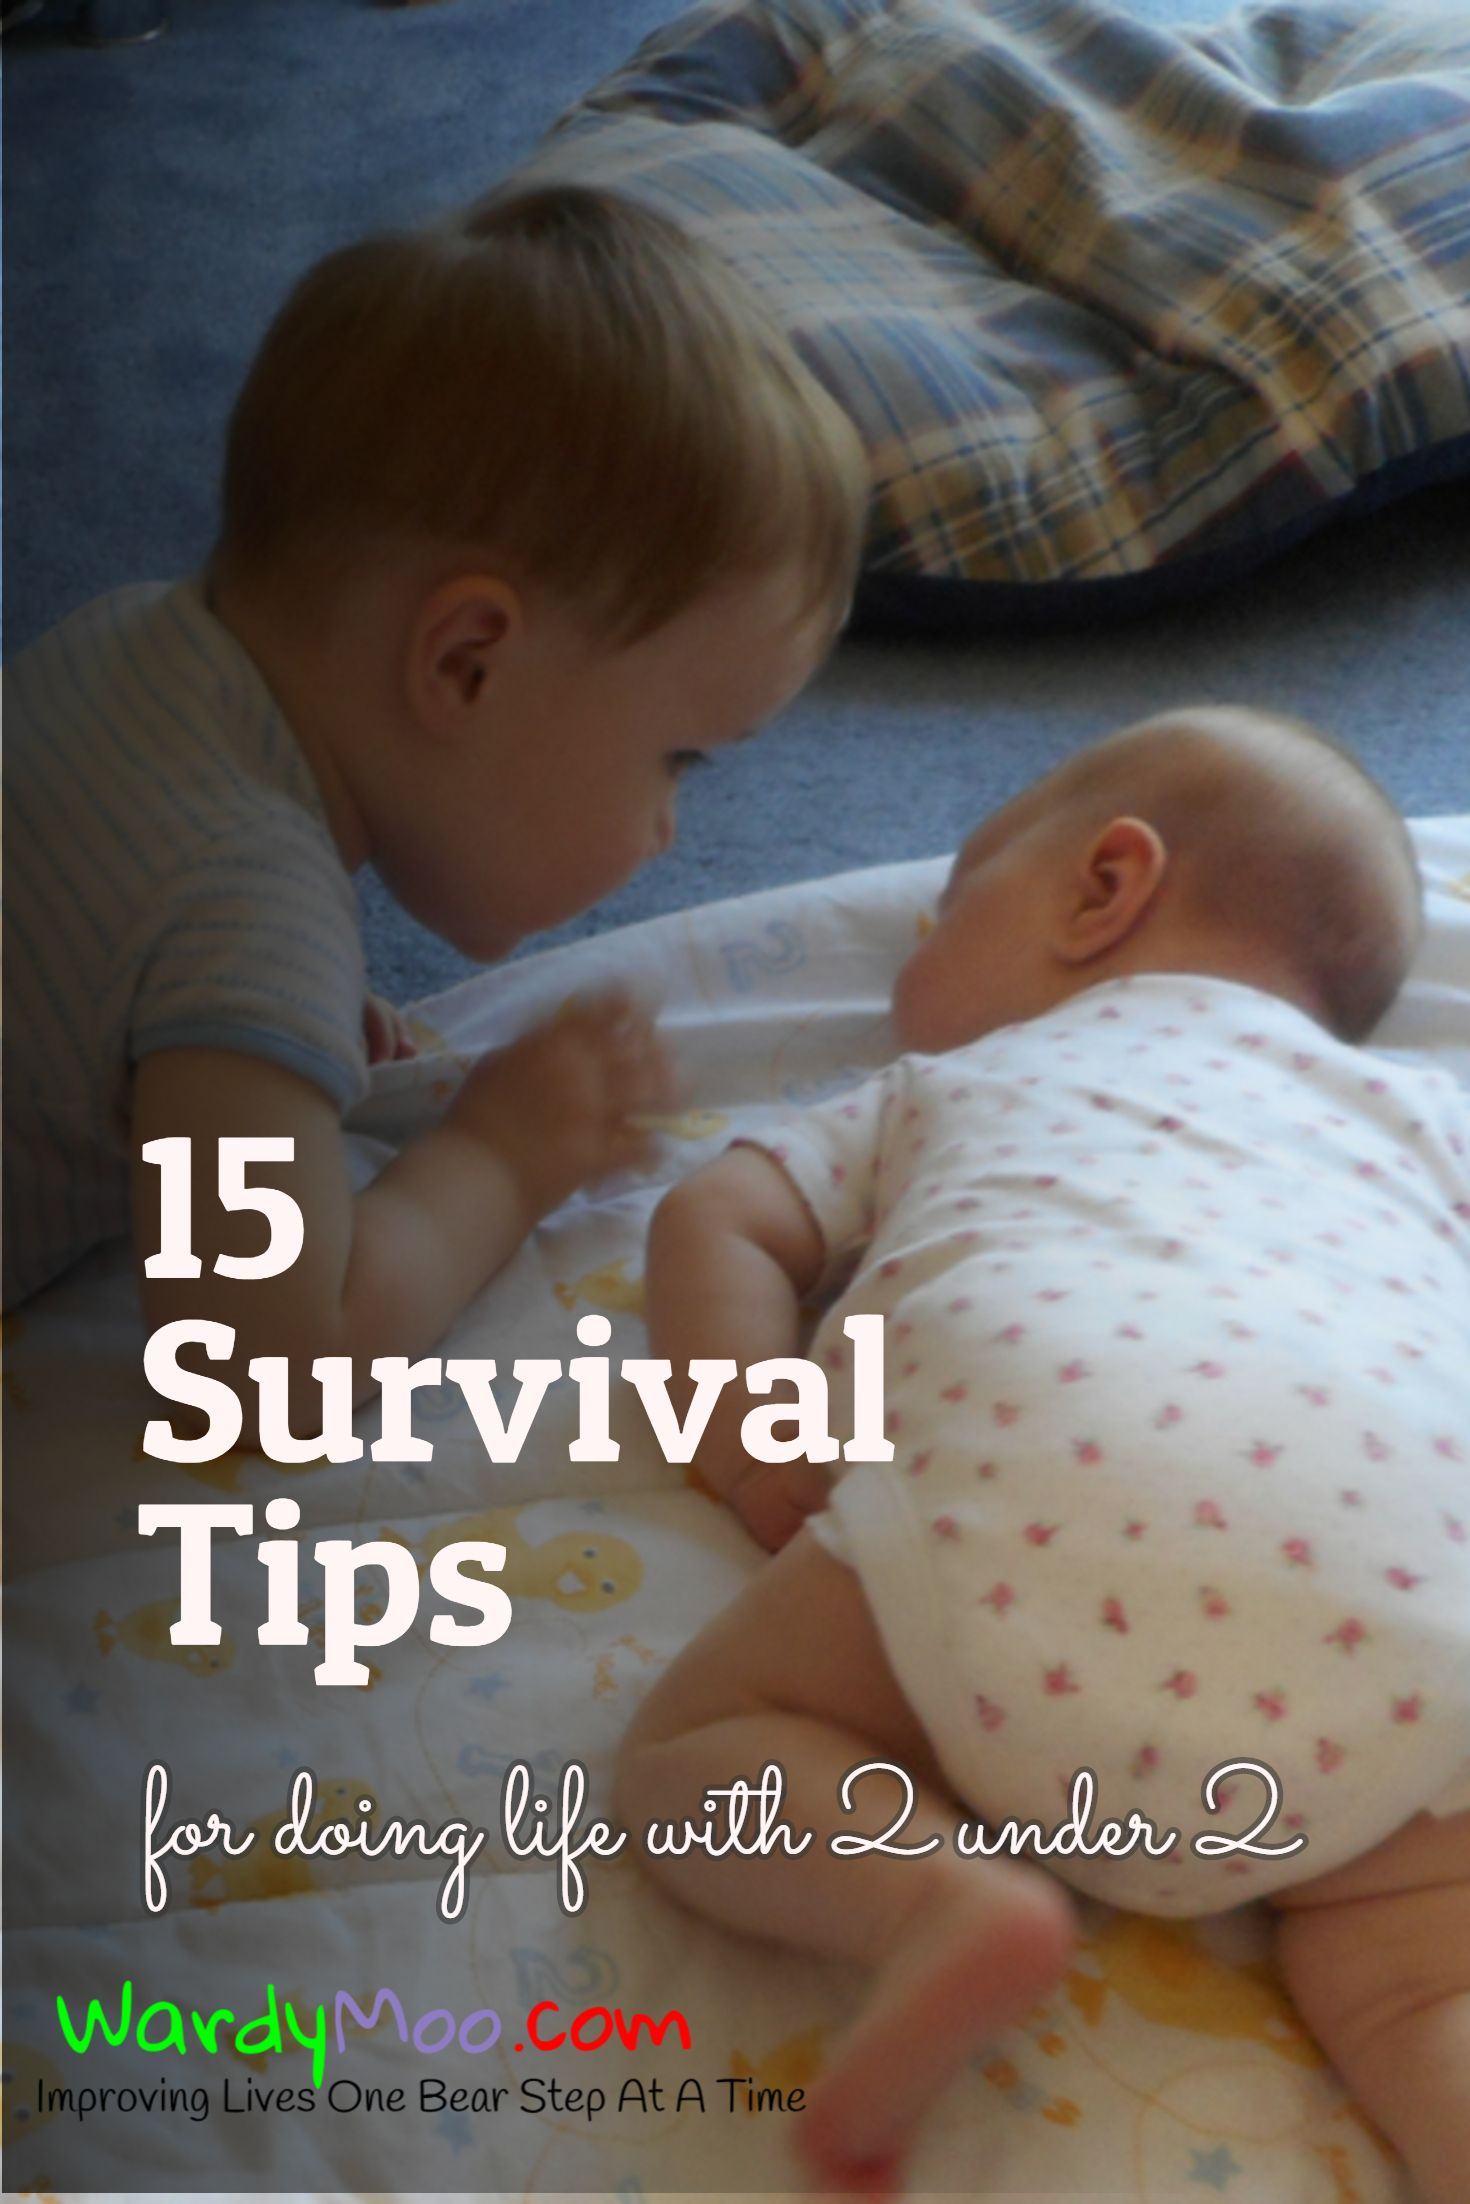 15 Survival Tips for doing life with 2 under 2 One, two, three or even more children can be hard work. You can survive here are some of my tips so far with two children under two